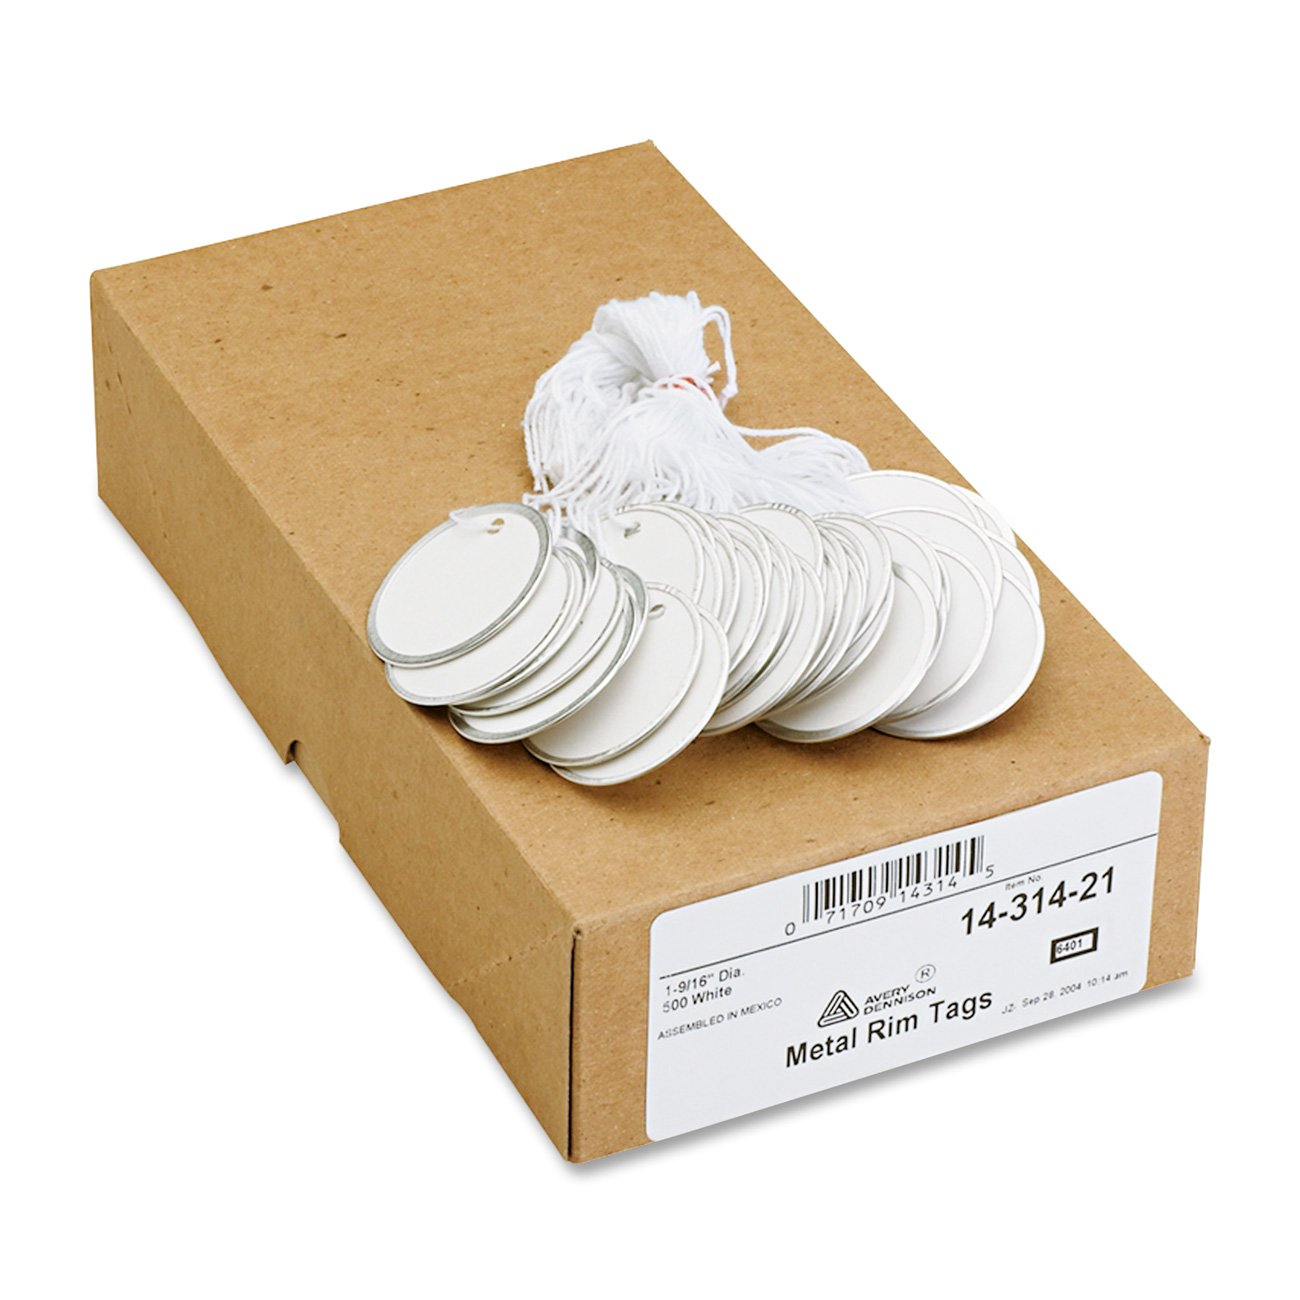 Avery White Metal Rim Tags, Strung, 1.5-Inch Diameter, Pack of 500 (14314)